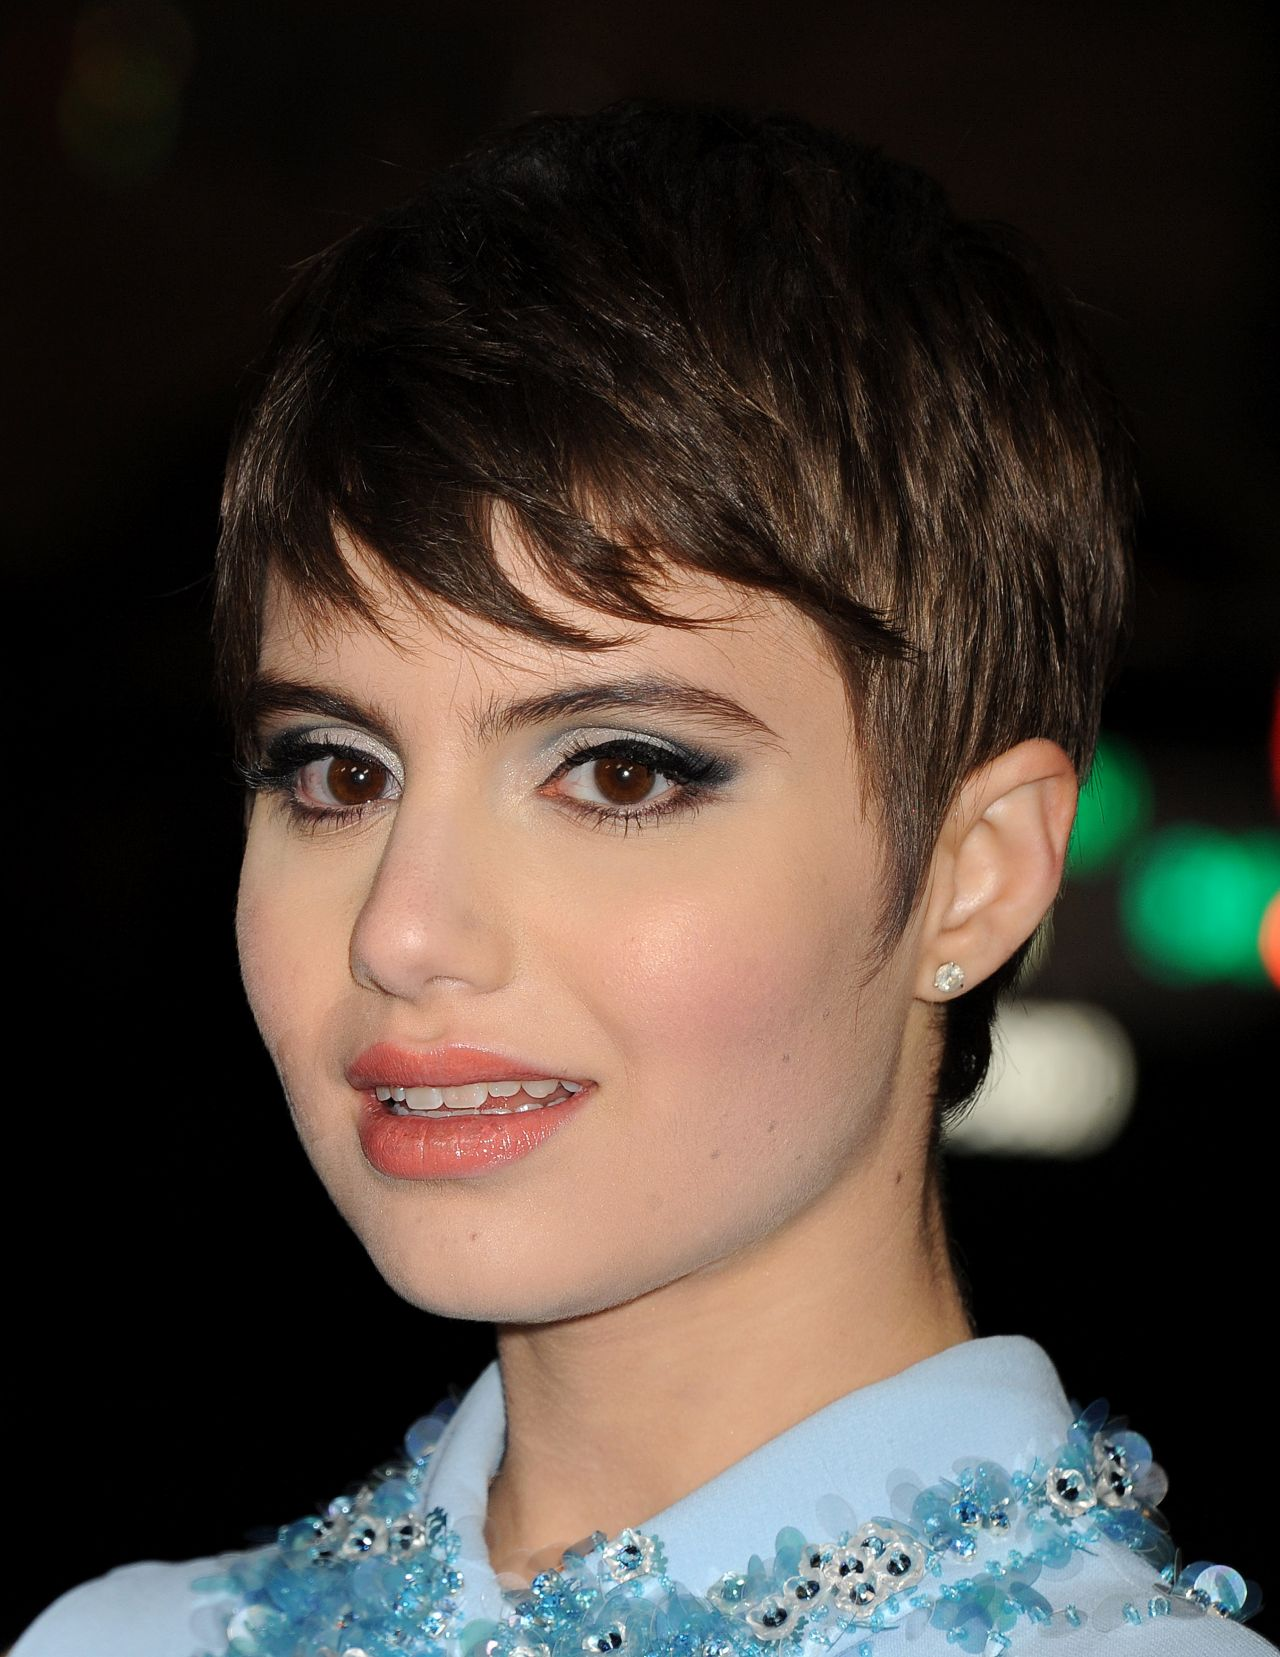 sami gayle instagramsami gayle twitter, sami gayle fansite, sami gayle instagram, sami gayle, sami gayle haircut, sami gayle movies, sami gayle vampire academy, sami gayle wikipedia, sami gayle биография, sami gayle net worth, sami gayle biography, sami gayle age, sami gayle bikini, sami gayle hairstyle, sami gayle facebook